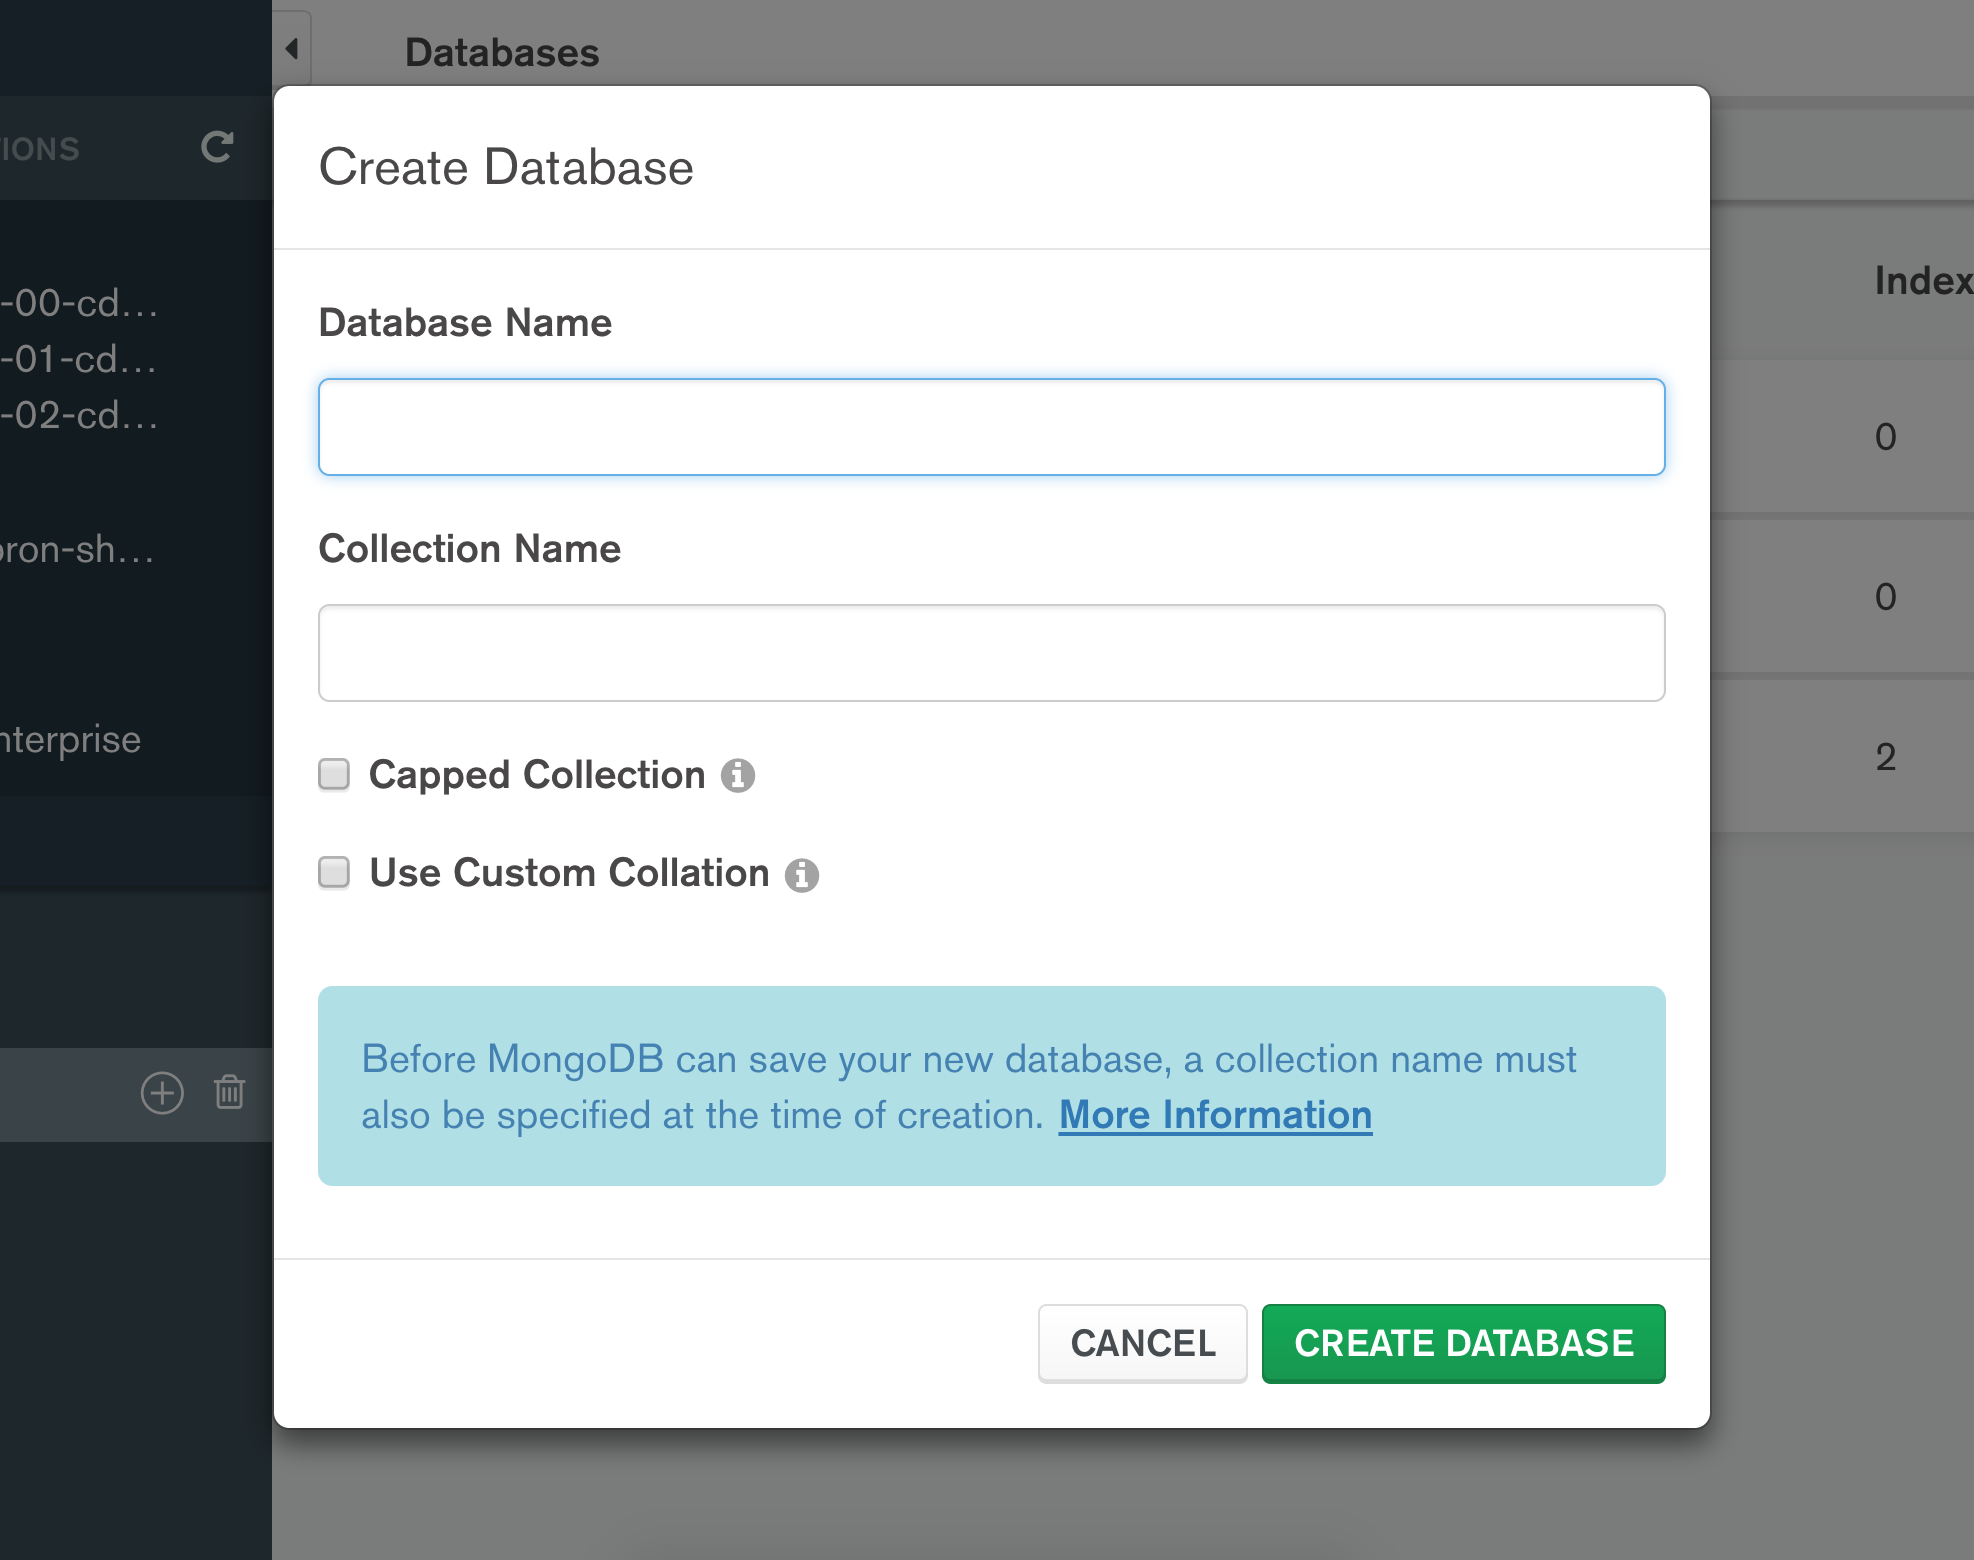 To create a database, you must also create a collection